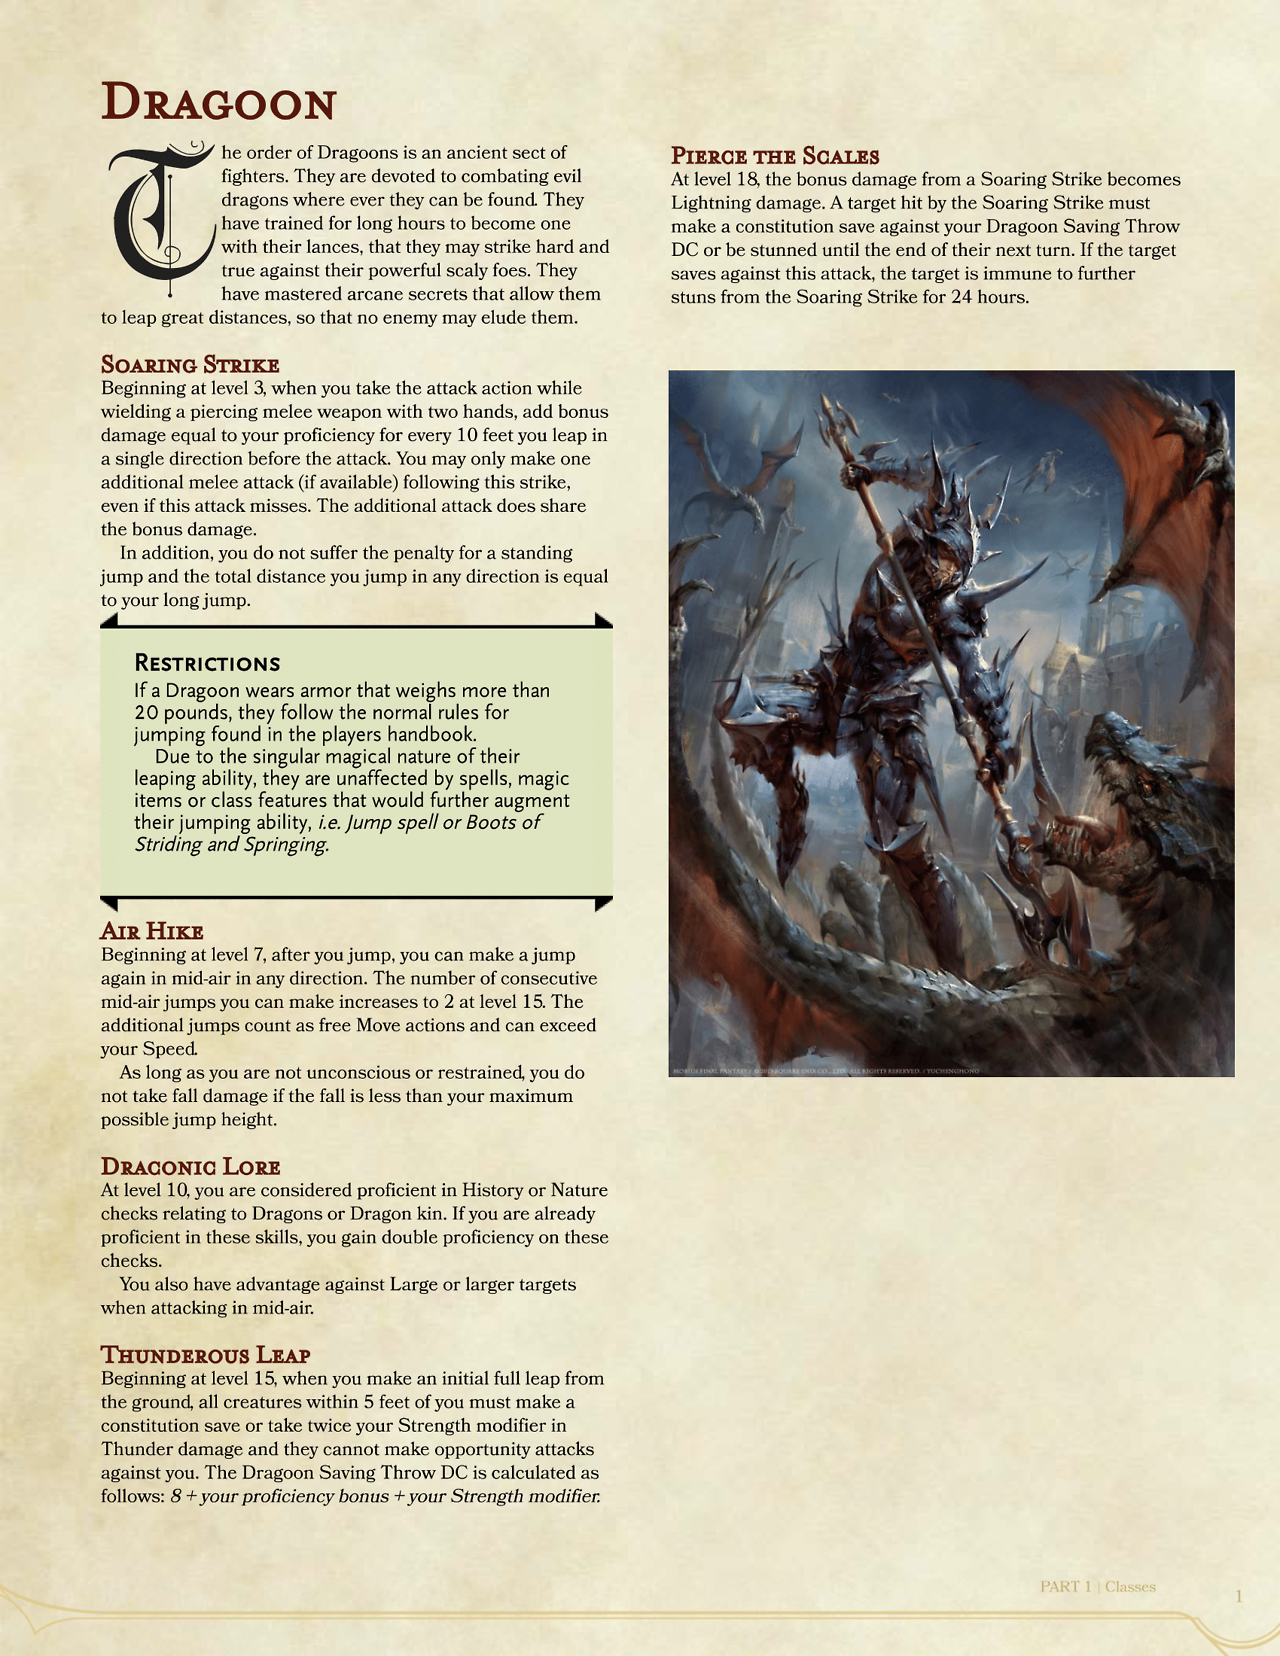 Dnd 5e Homebrew Dragoon Fighter By Ajaxx07 Dnd 5e Homebrew Dnd Dragons Dnd And if the answer is still no, then how far can a character fall without taking damage while wearing these. dnd 5e homebrew dragoon fighter by